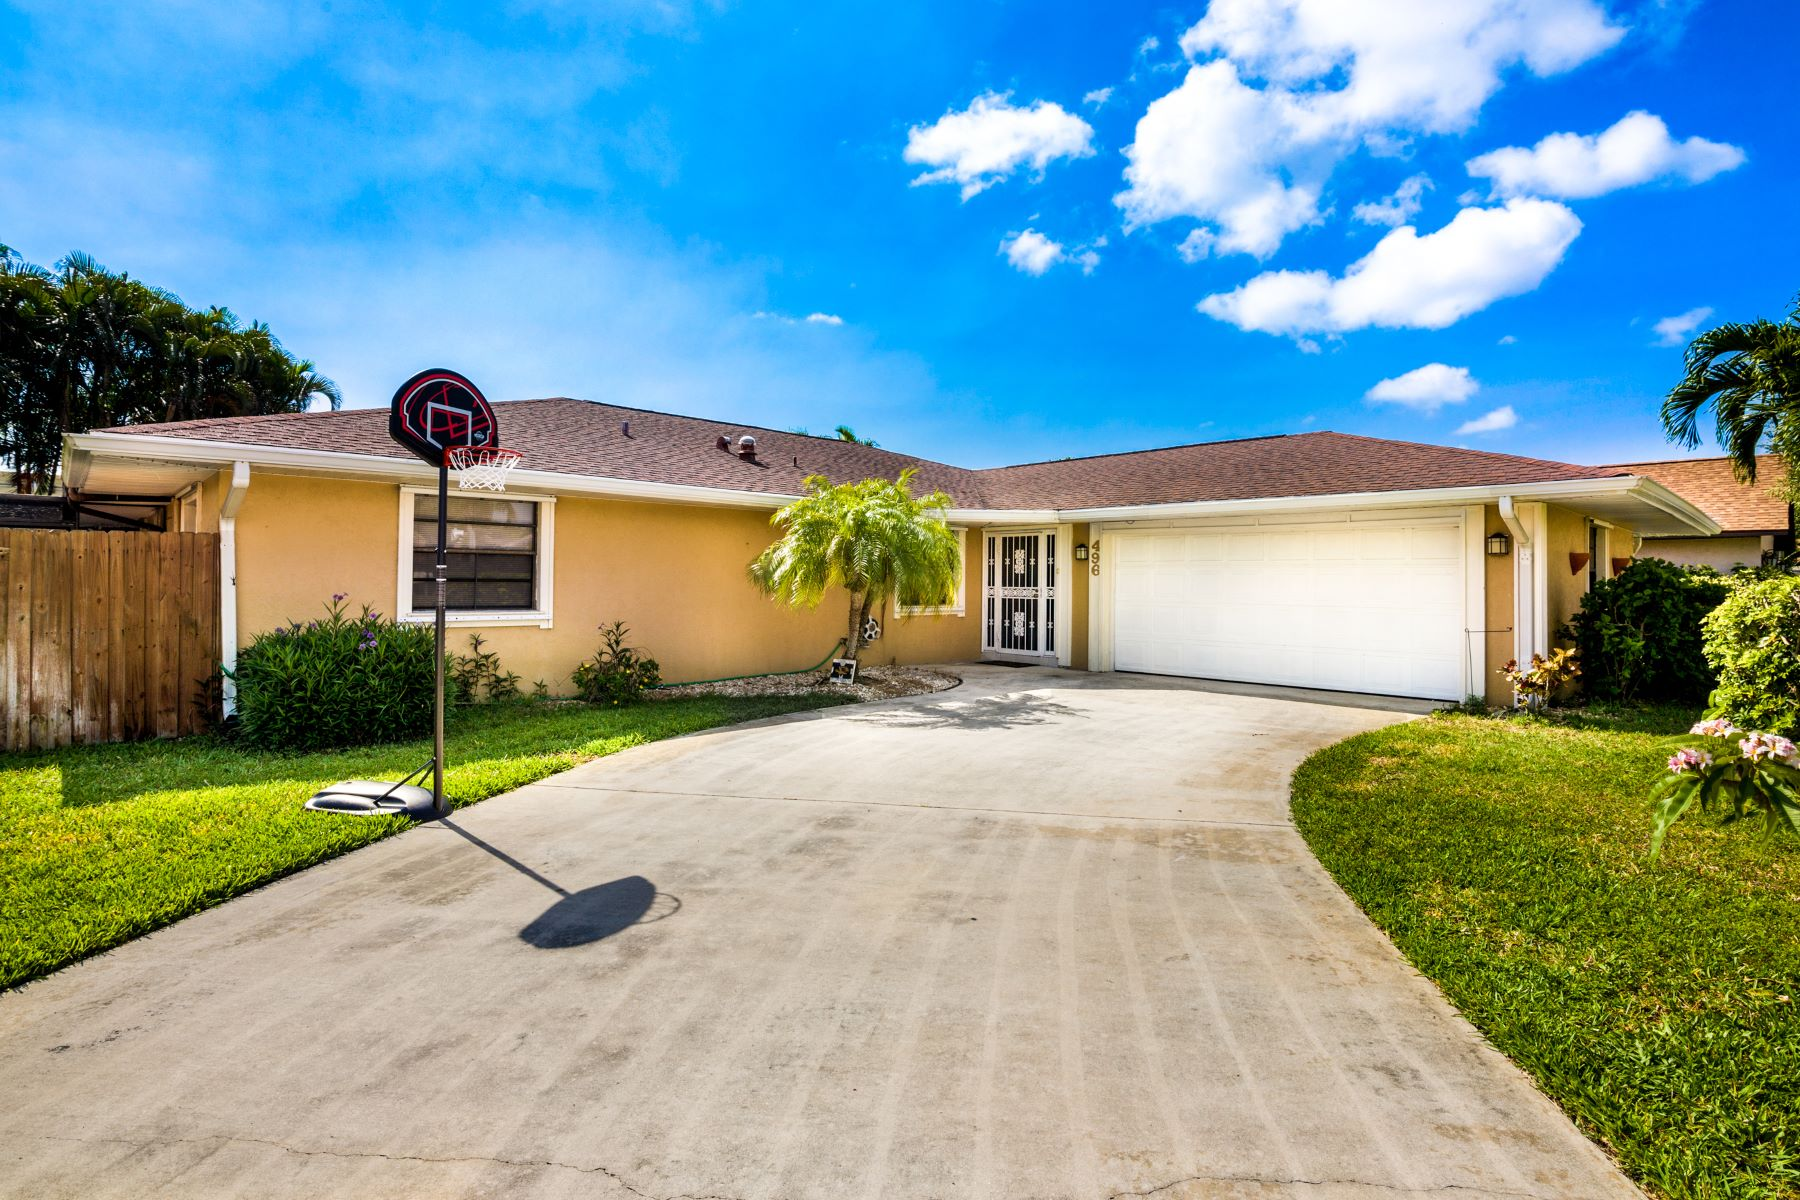 Single Family Homes for Sale at Tortoise View Estates 496 Tortoise View Circle Satellite Beach, Florida 32937 United States